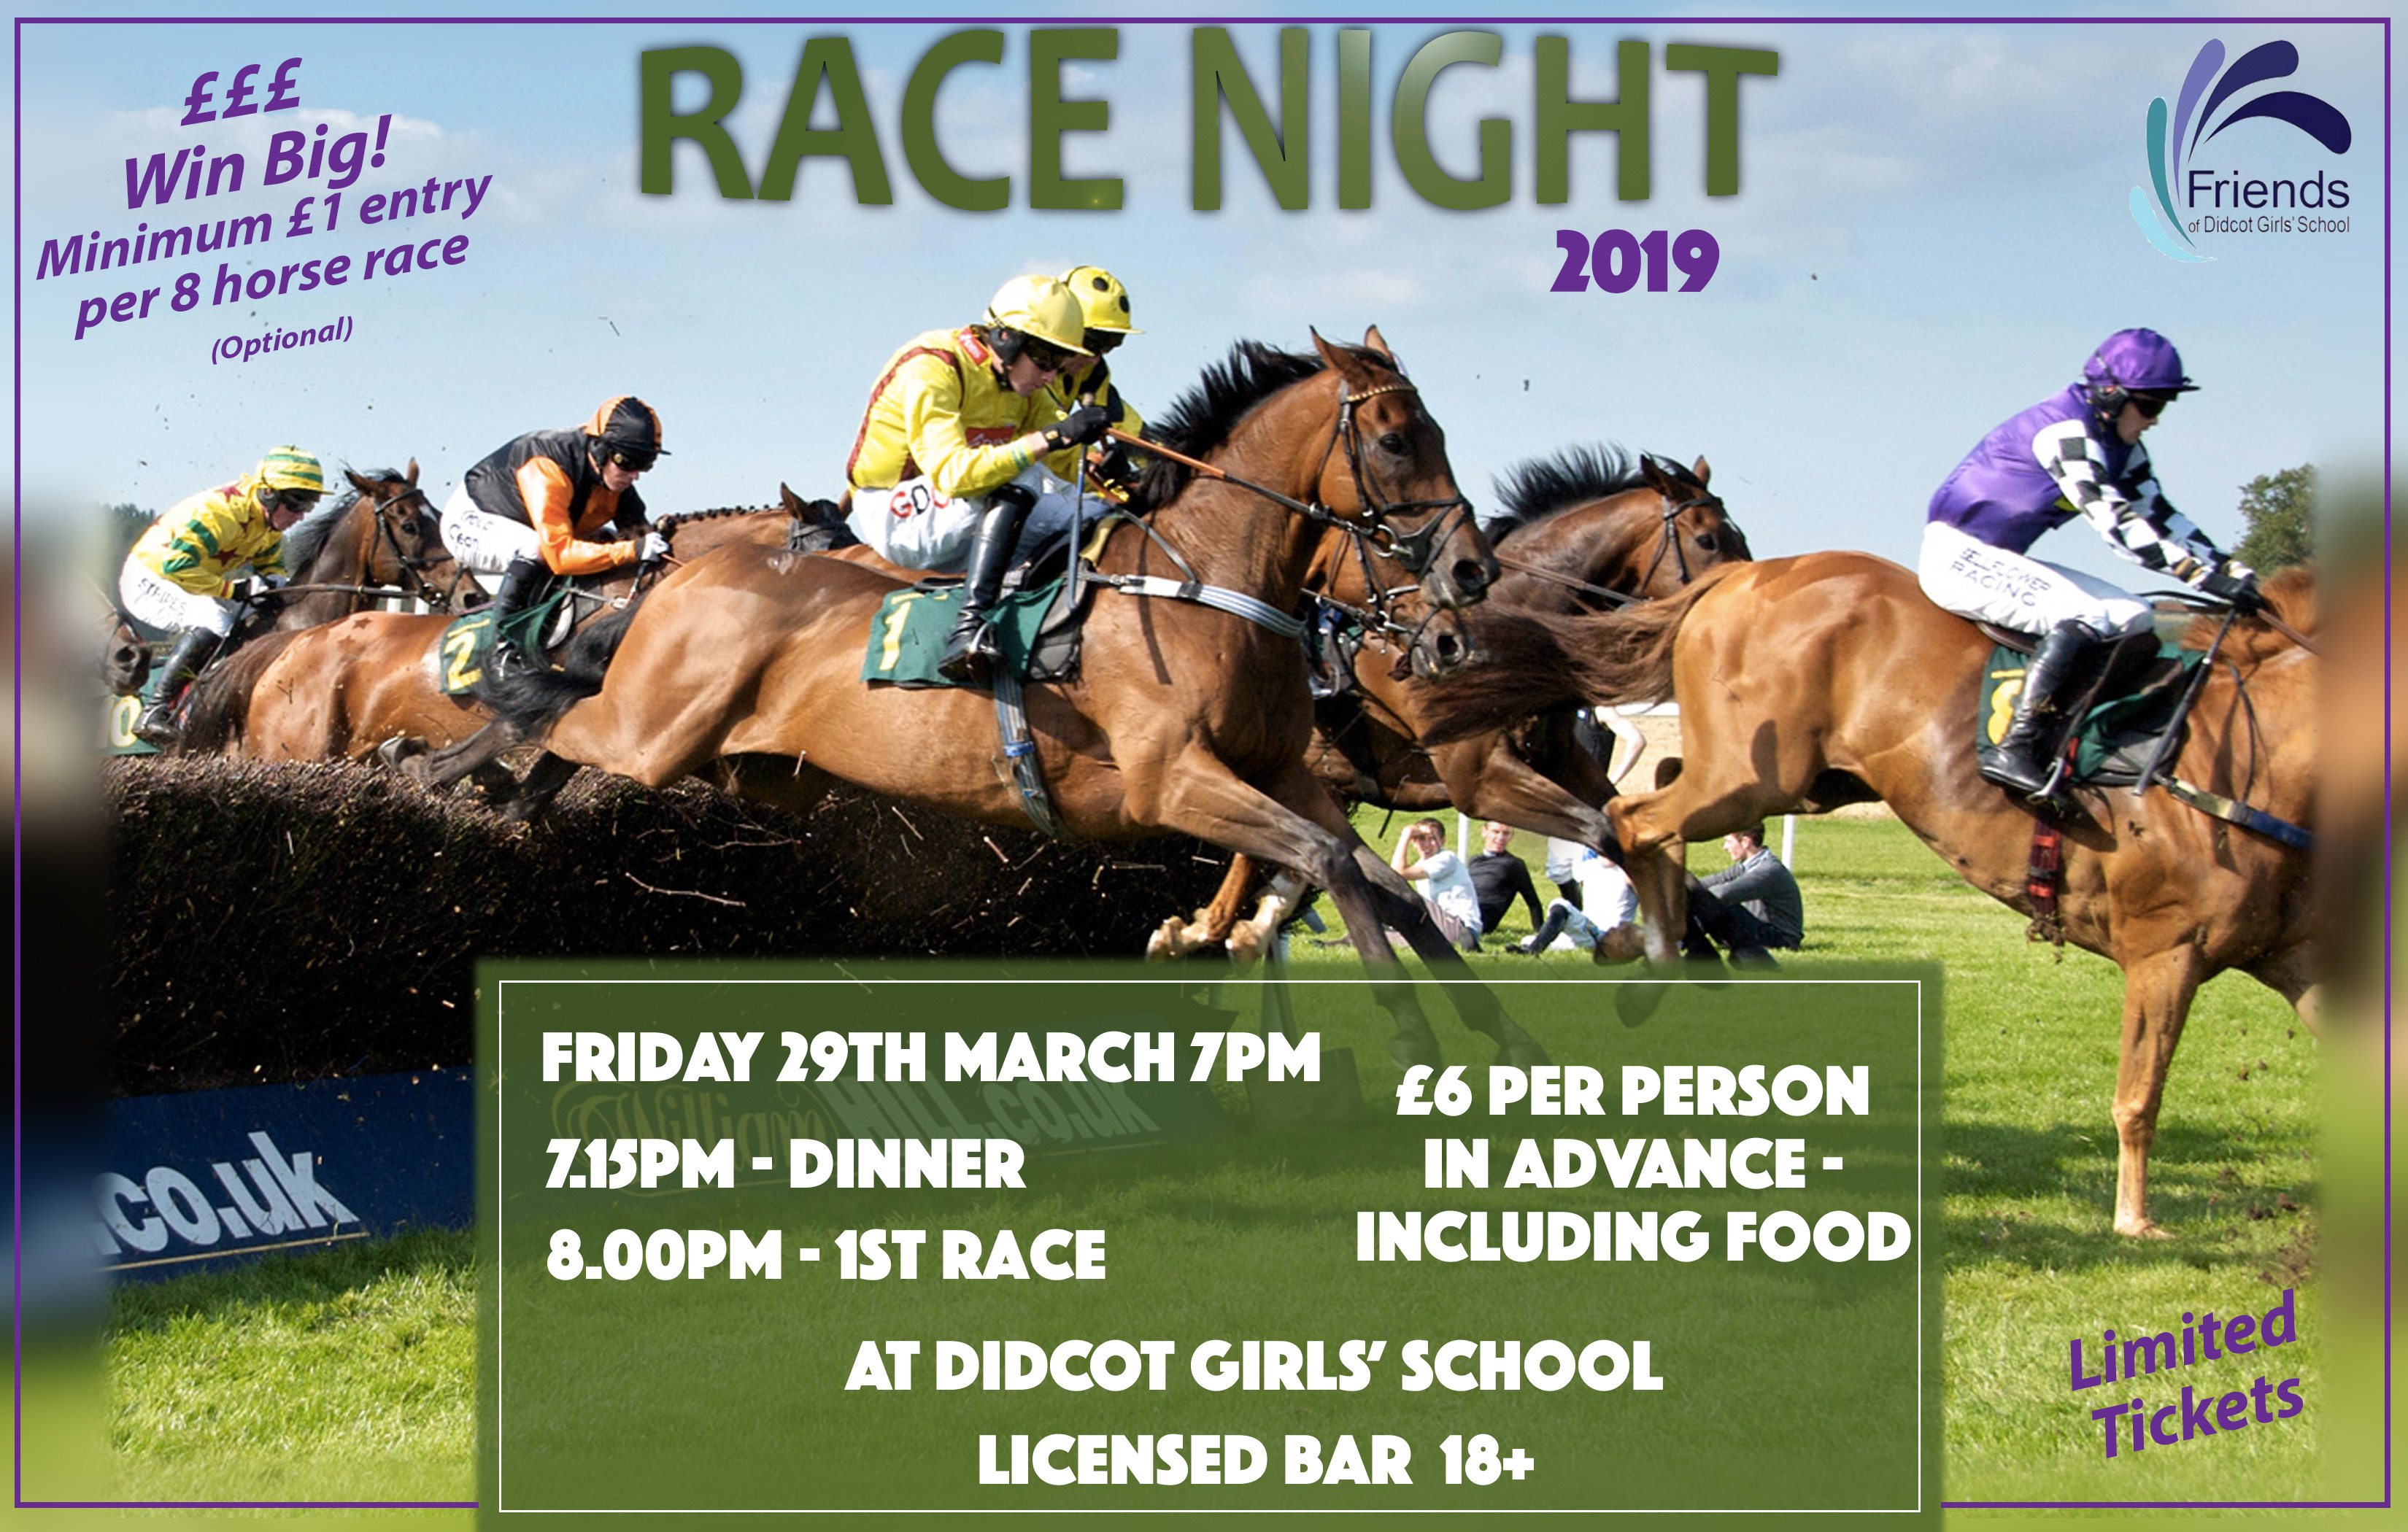 Race Night Poster 2019 a4